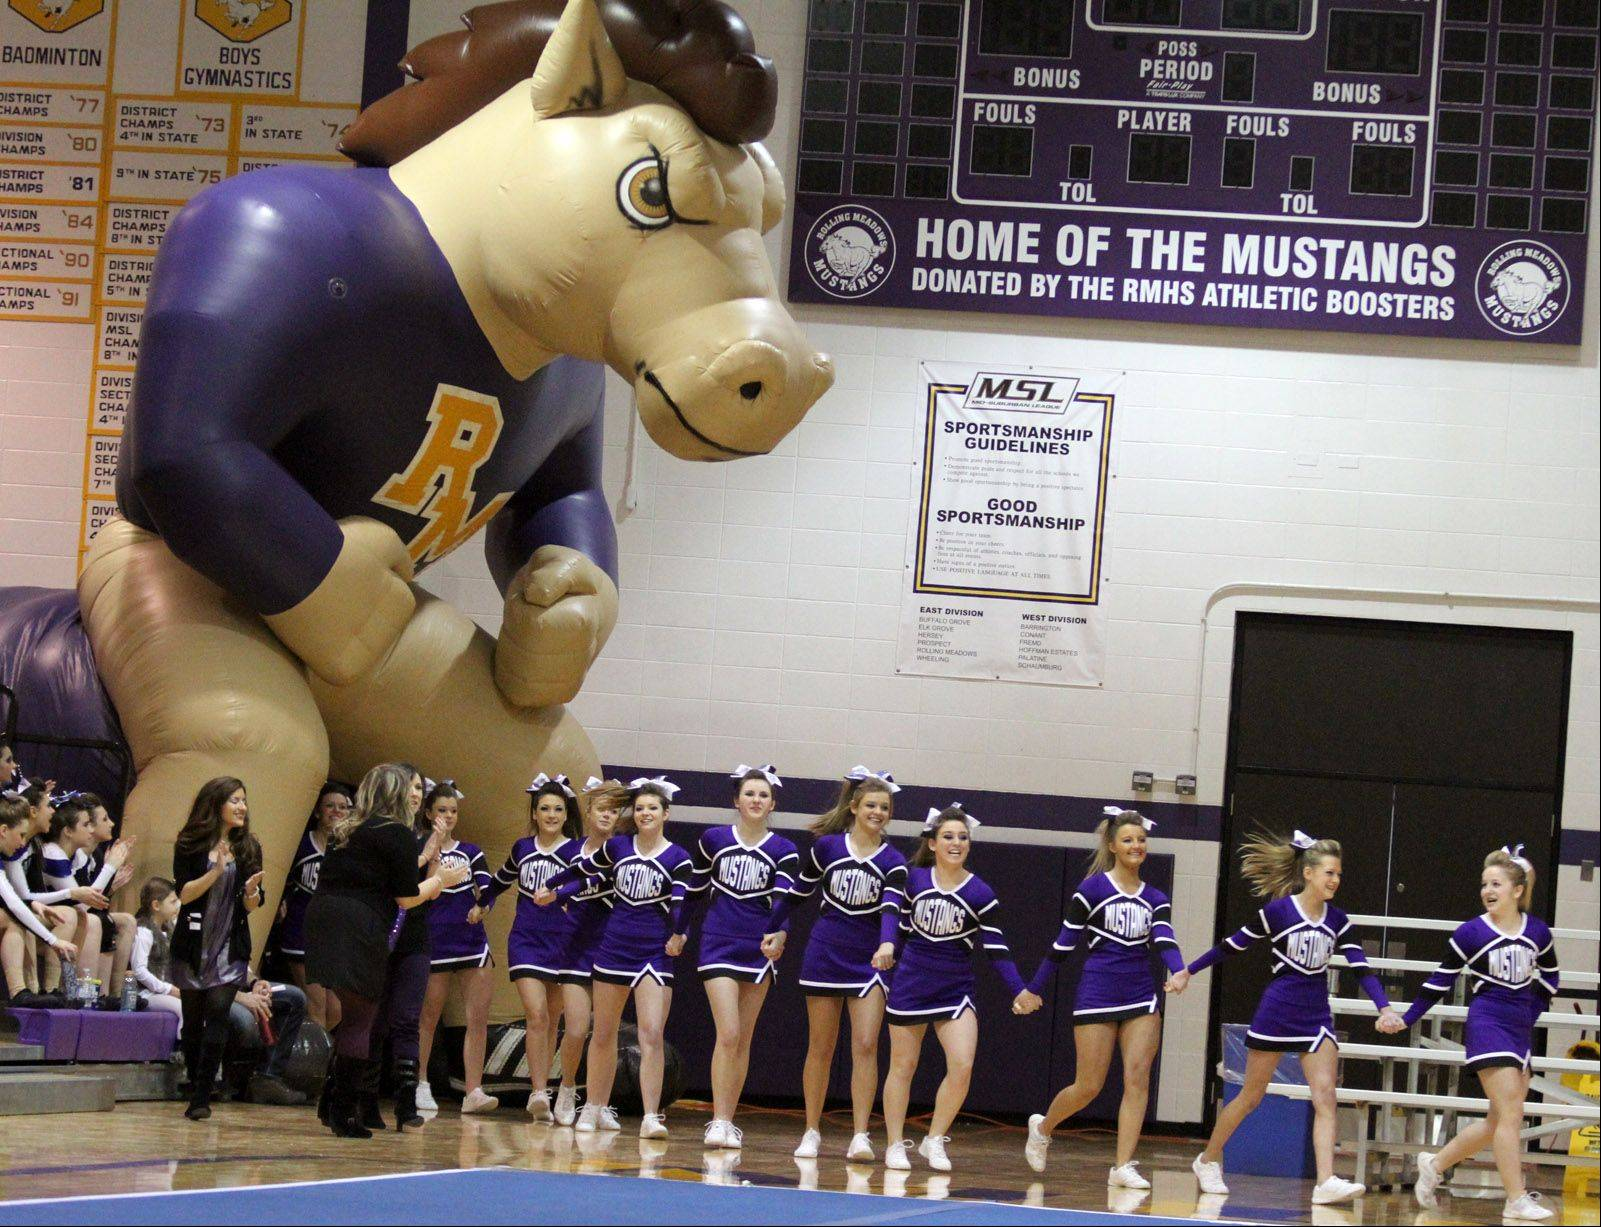 Rolling Meadows High School takes the floor at the IHSA competitive cheerleading sectionals in Rolling Meadows on Saturday.